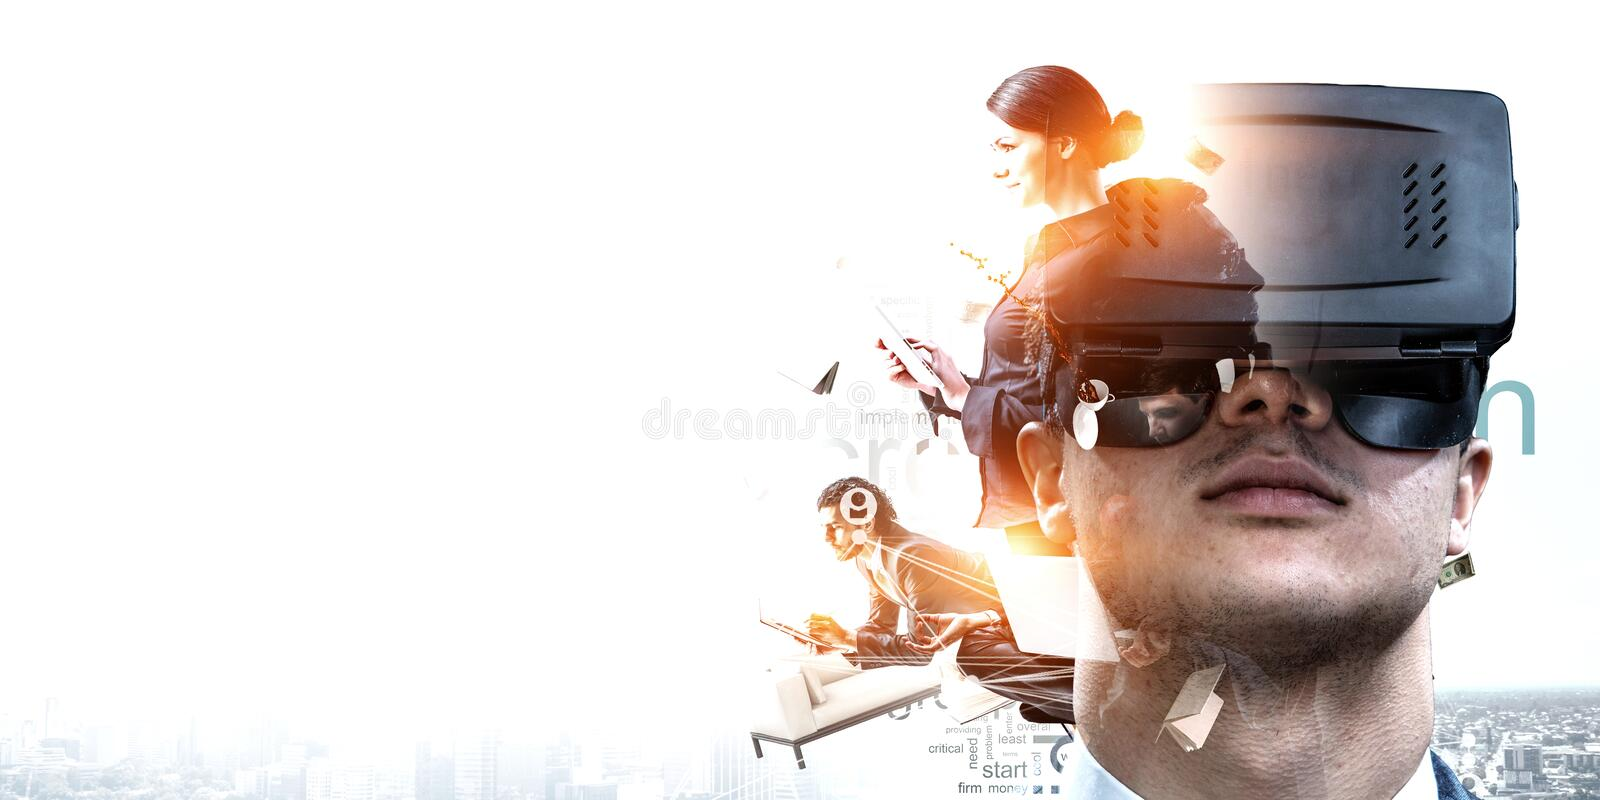 Abstract image of virtual reality experience, a man in VR glasses stock photo